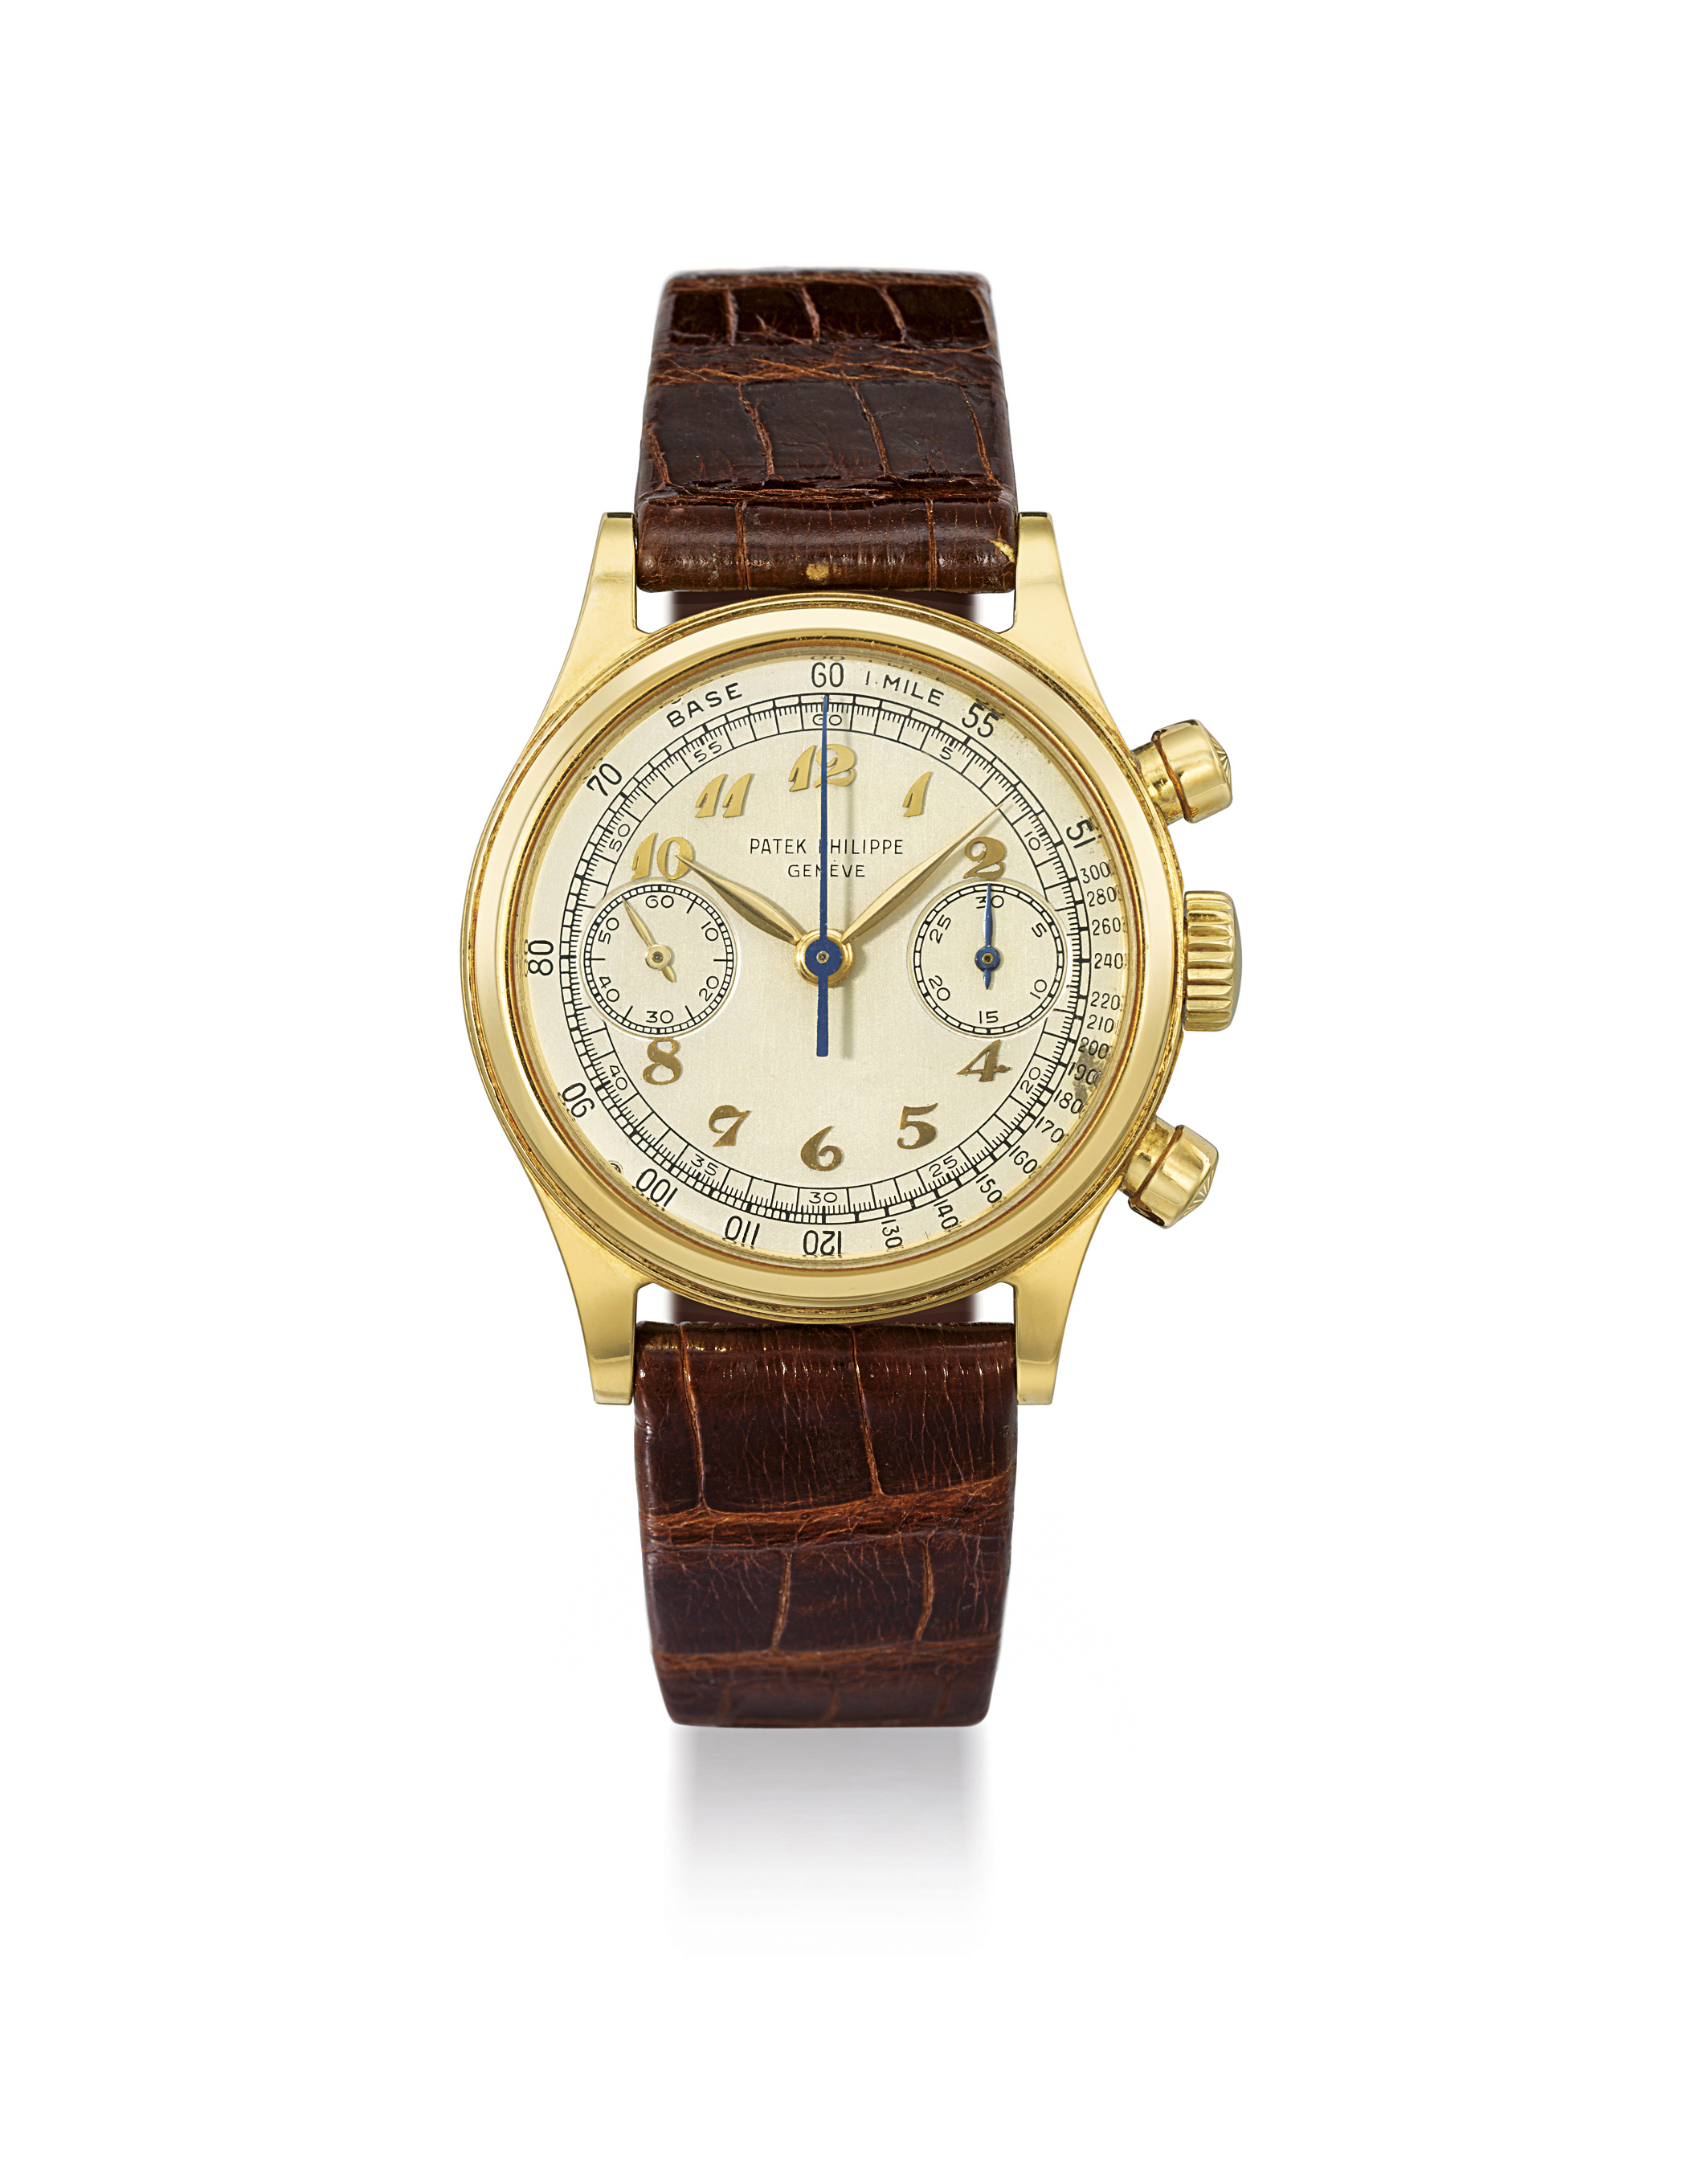 PATEK PHILIPPE. A VERY FINE AND RARE 18K GOLD CHRONOGRAPH WRISTWATCH WITH BREGUET NUMERALS